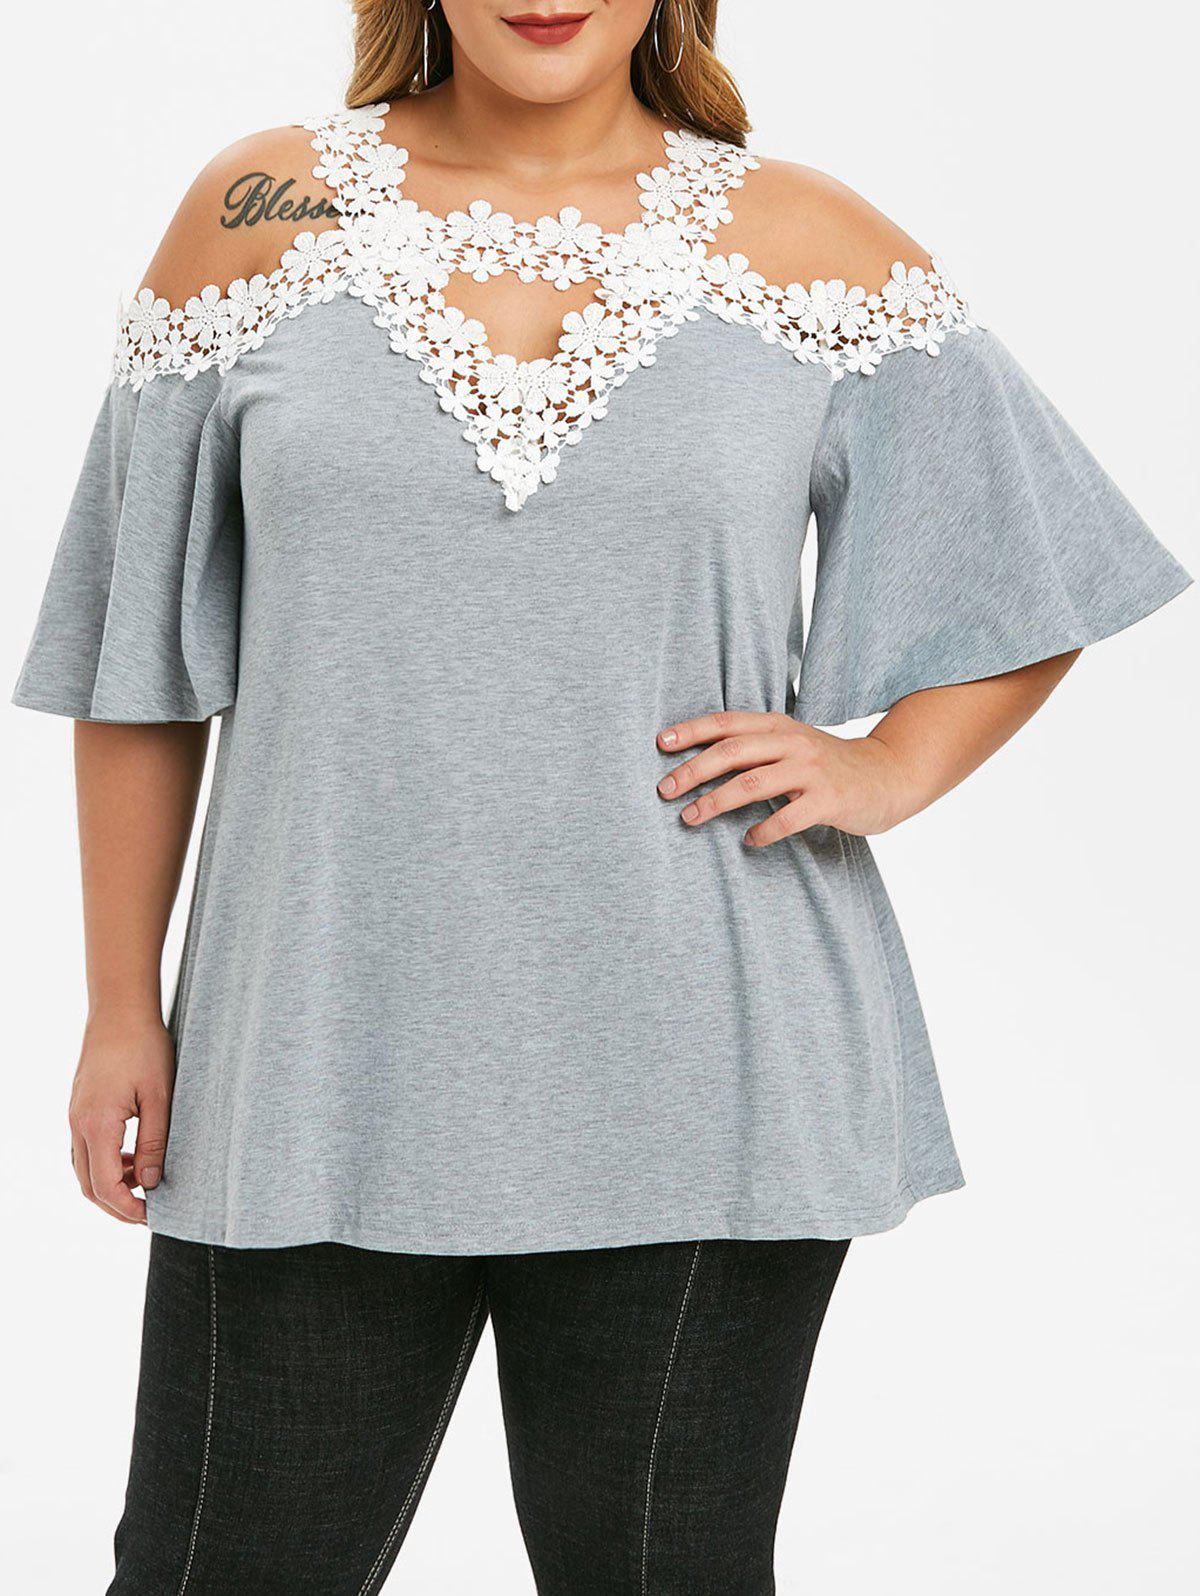 Plus Size Lace Crochet Cut Out Open Shoulder T-shirt